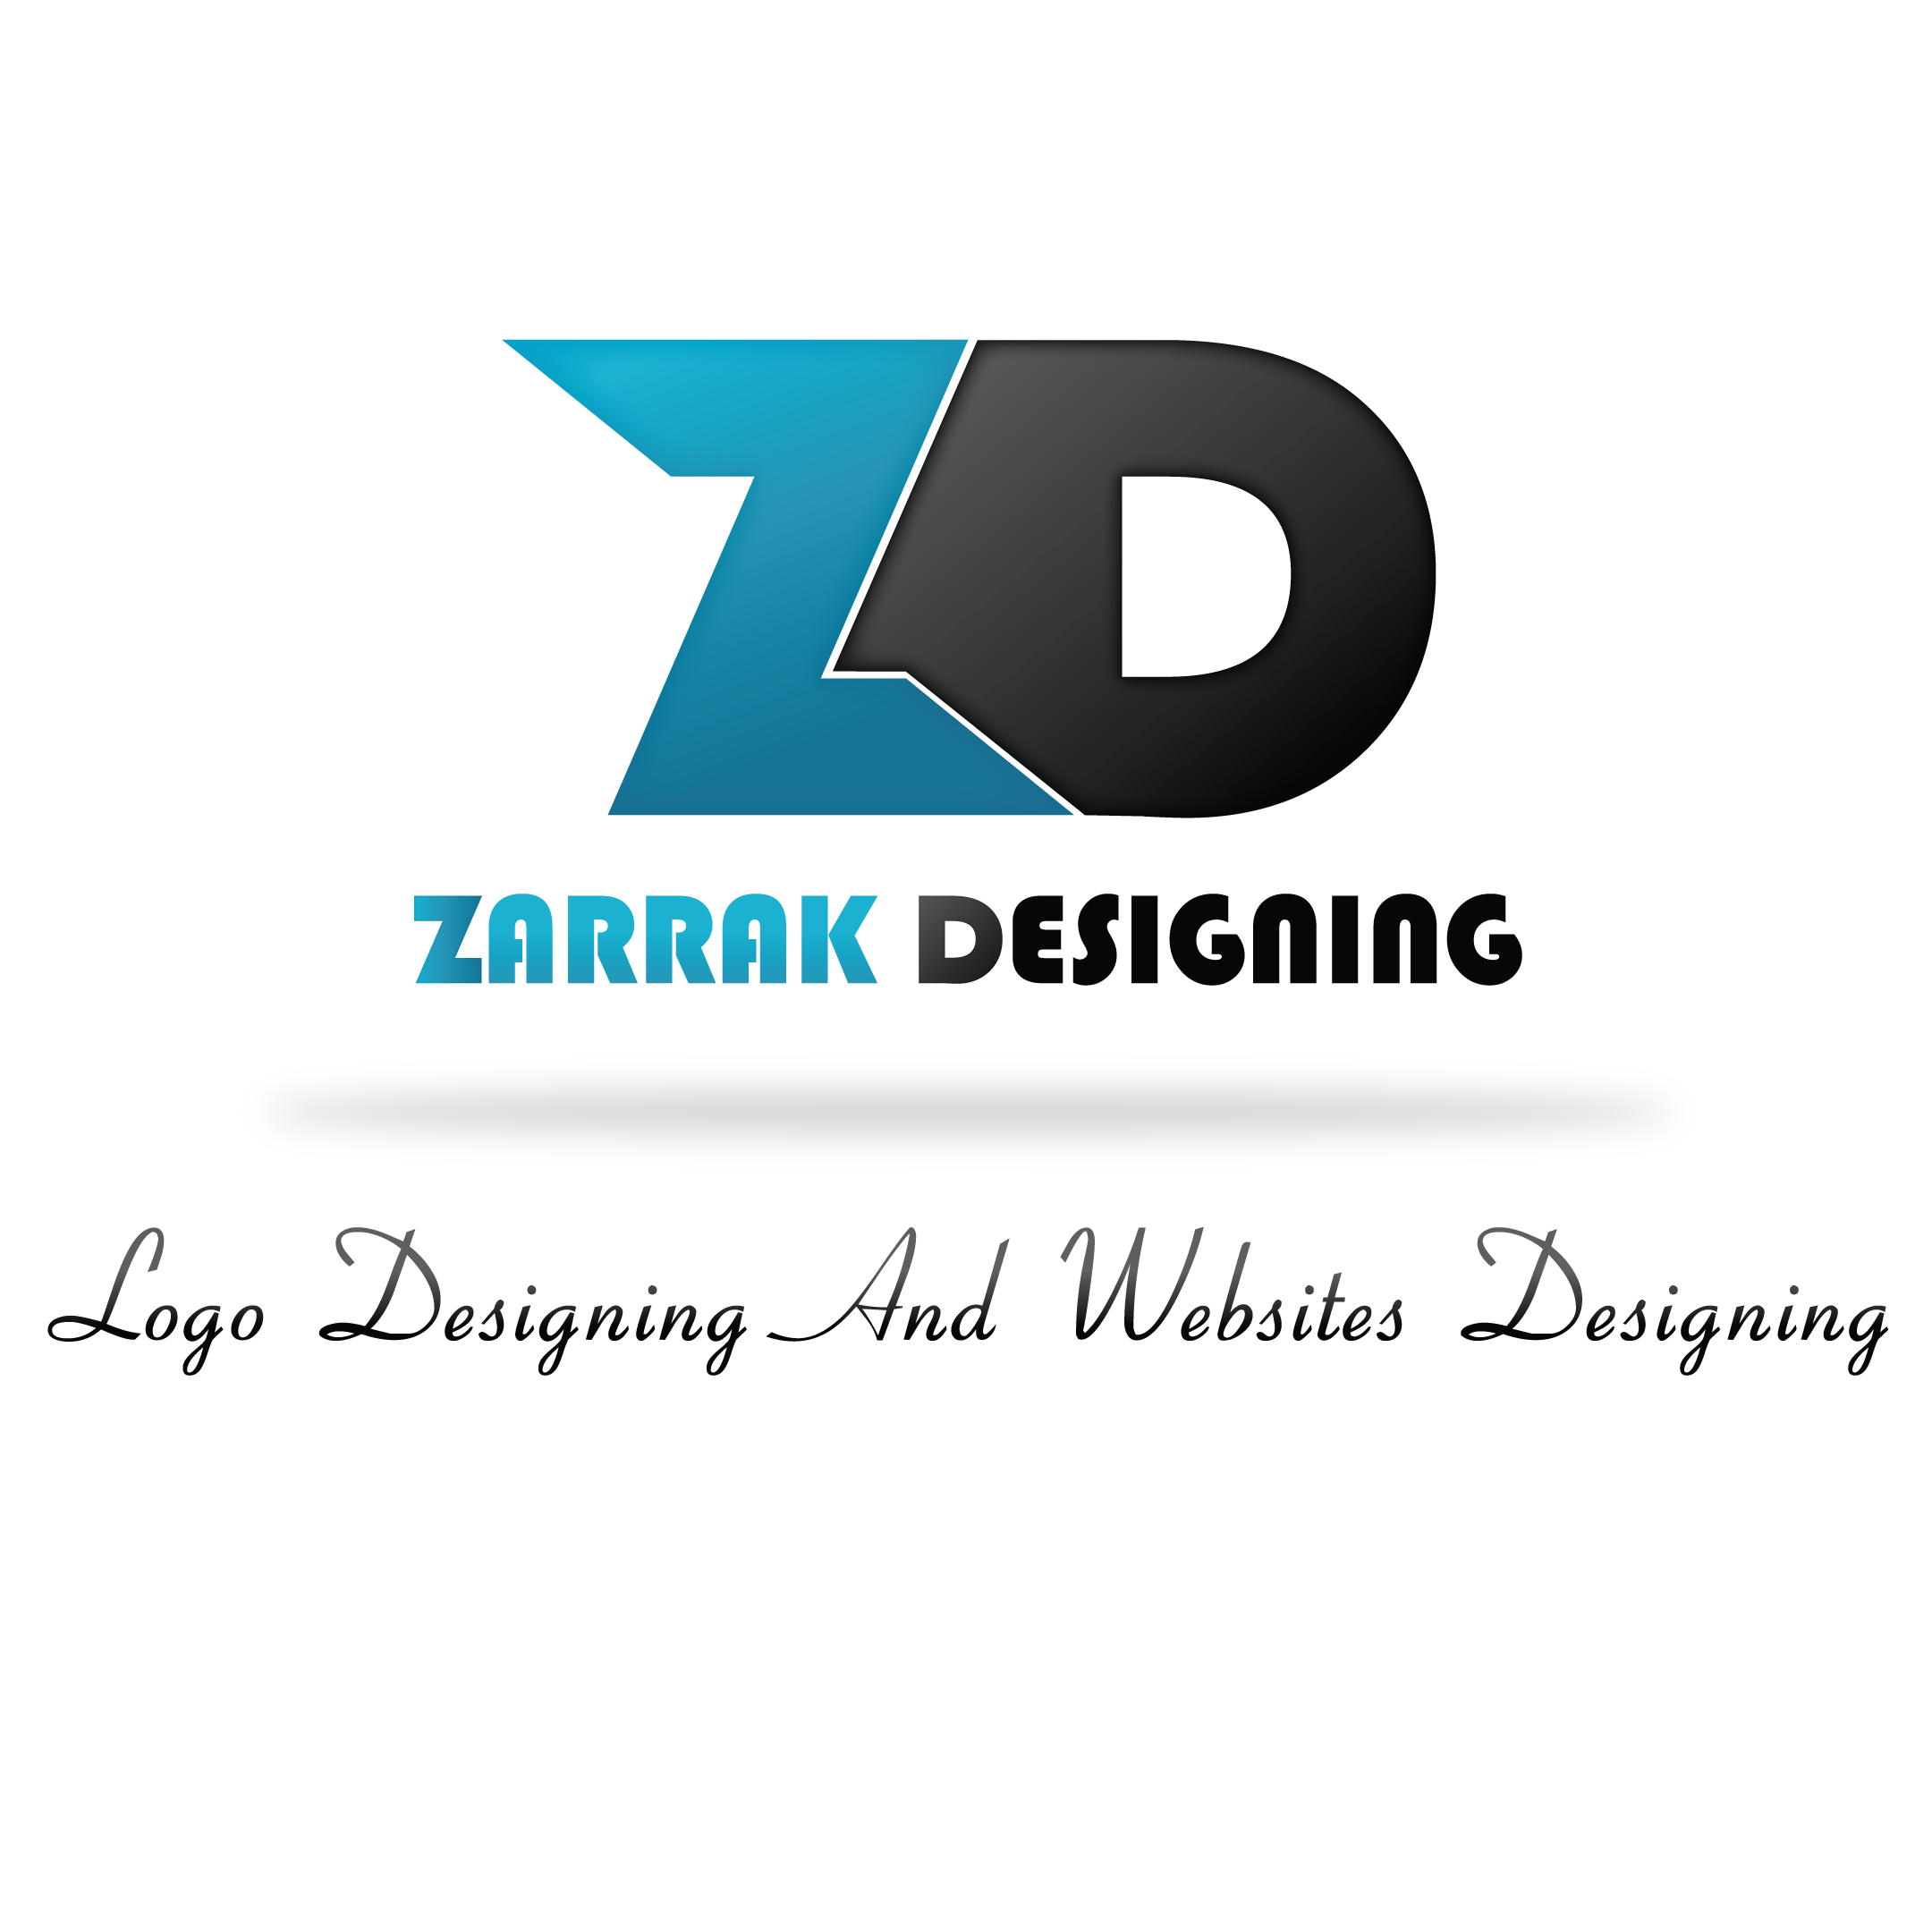 make a professional cool logo for your website or brand or ...